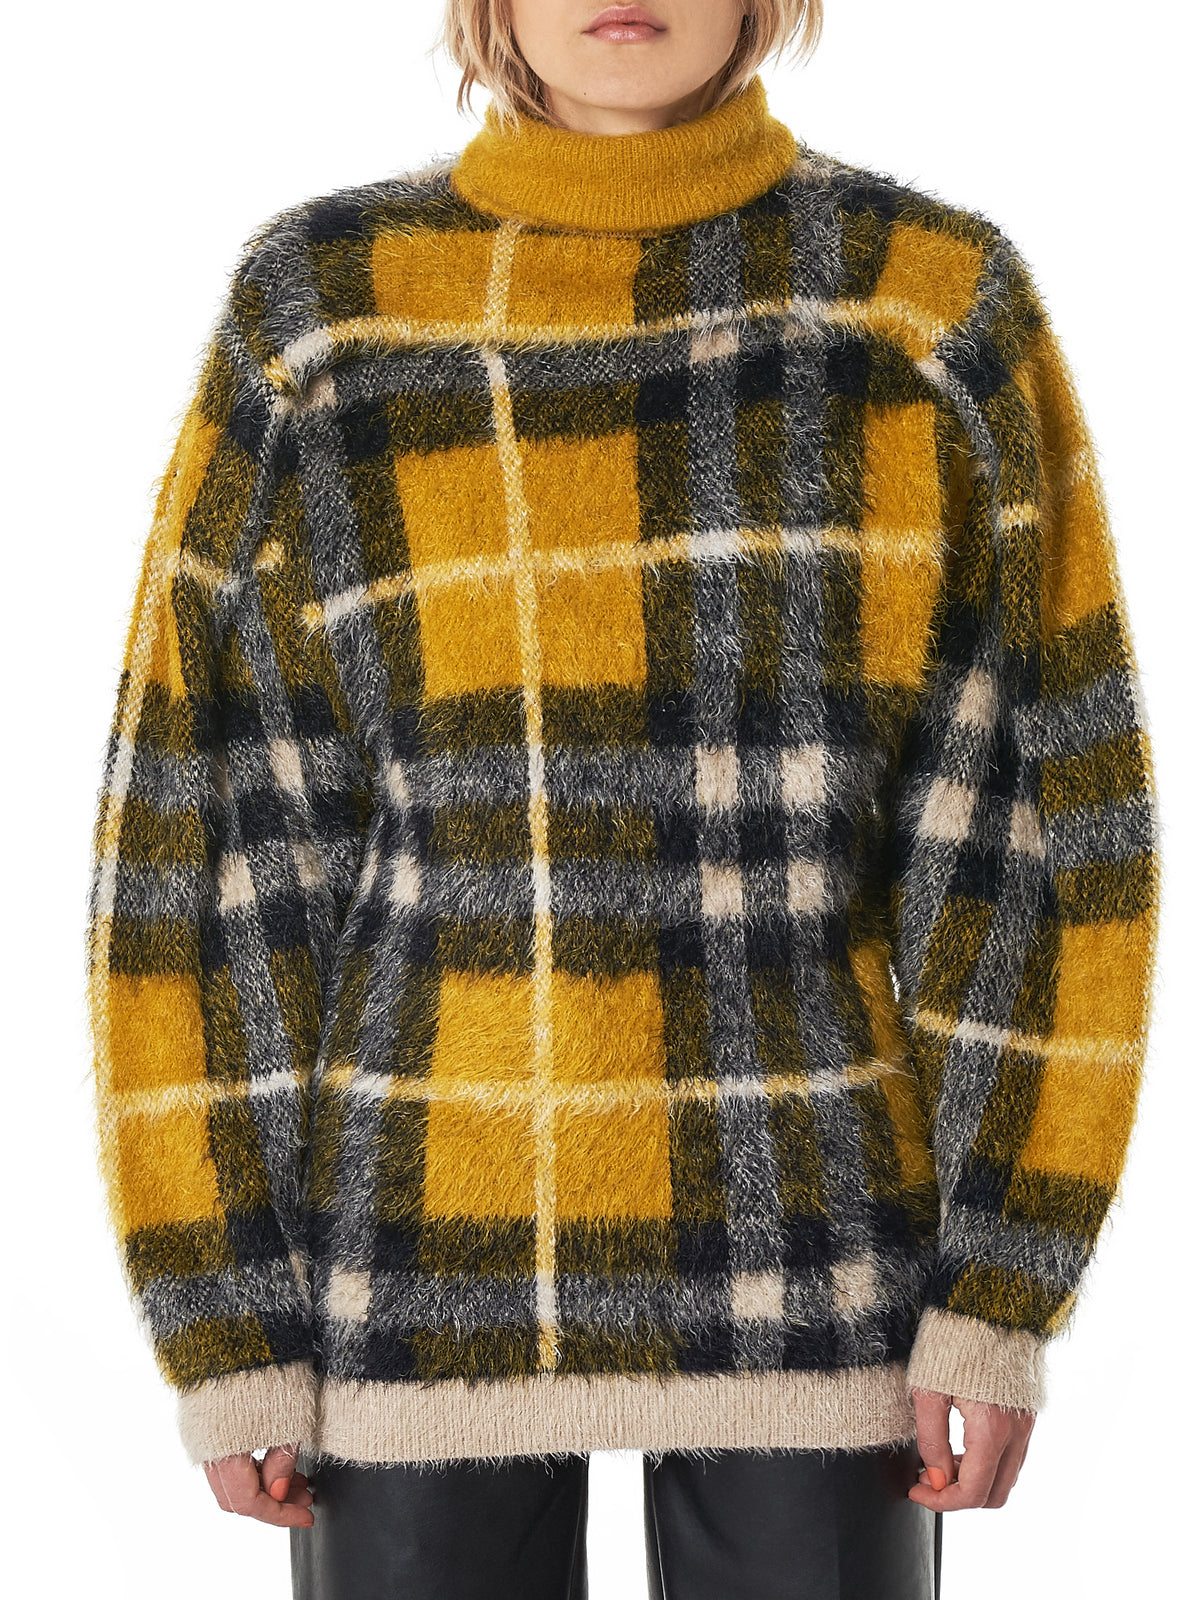 Y/Project Yellow Sweater - Hlorenzo Front